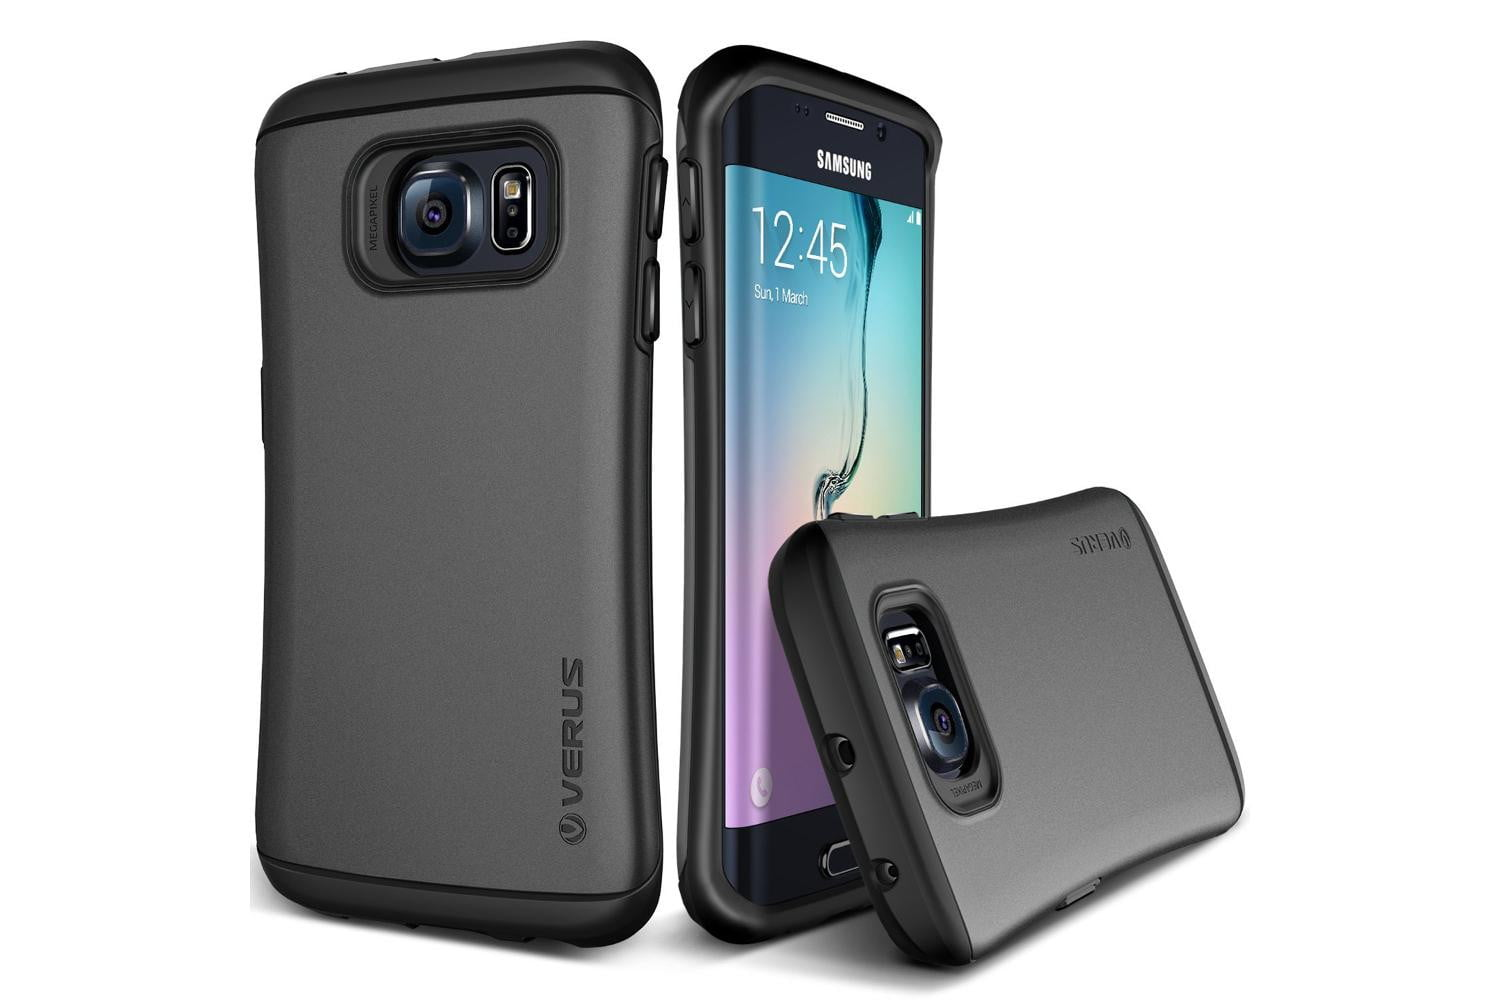 The 23 Best Galaxy S6 Edge Cases And Covers Digital Trends Rearth Iphone 7 Plus Slim Gloss Black Heres A Classic Design Featuring Tpu Inner That Includes Reinforced Corners For Good Drop Protection Polycarbonate Back Panel To Add